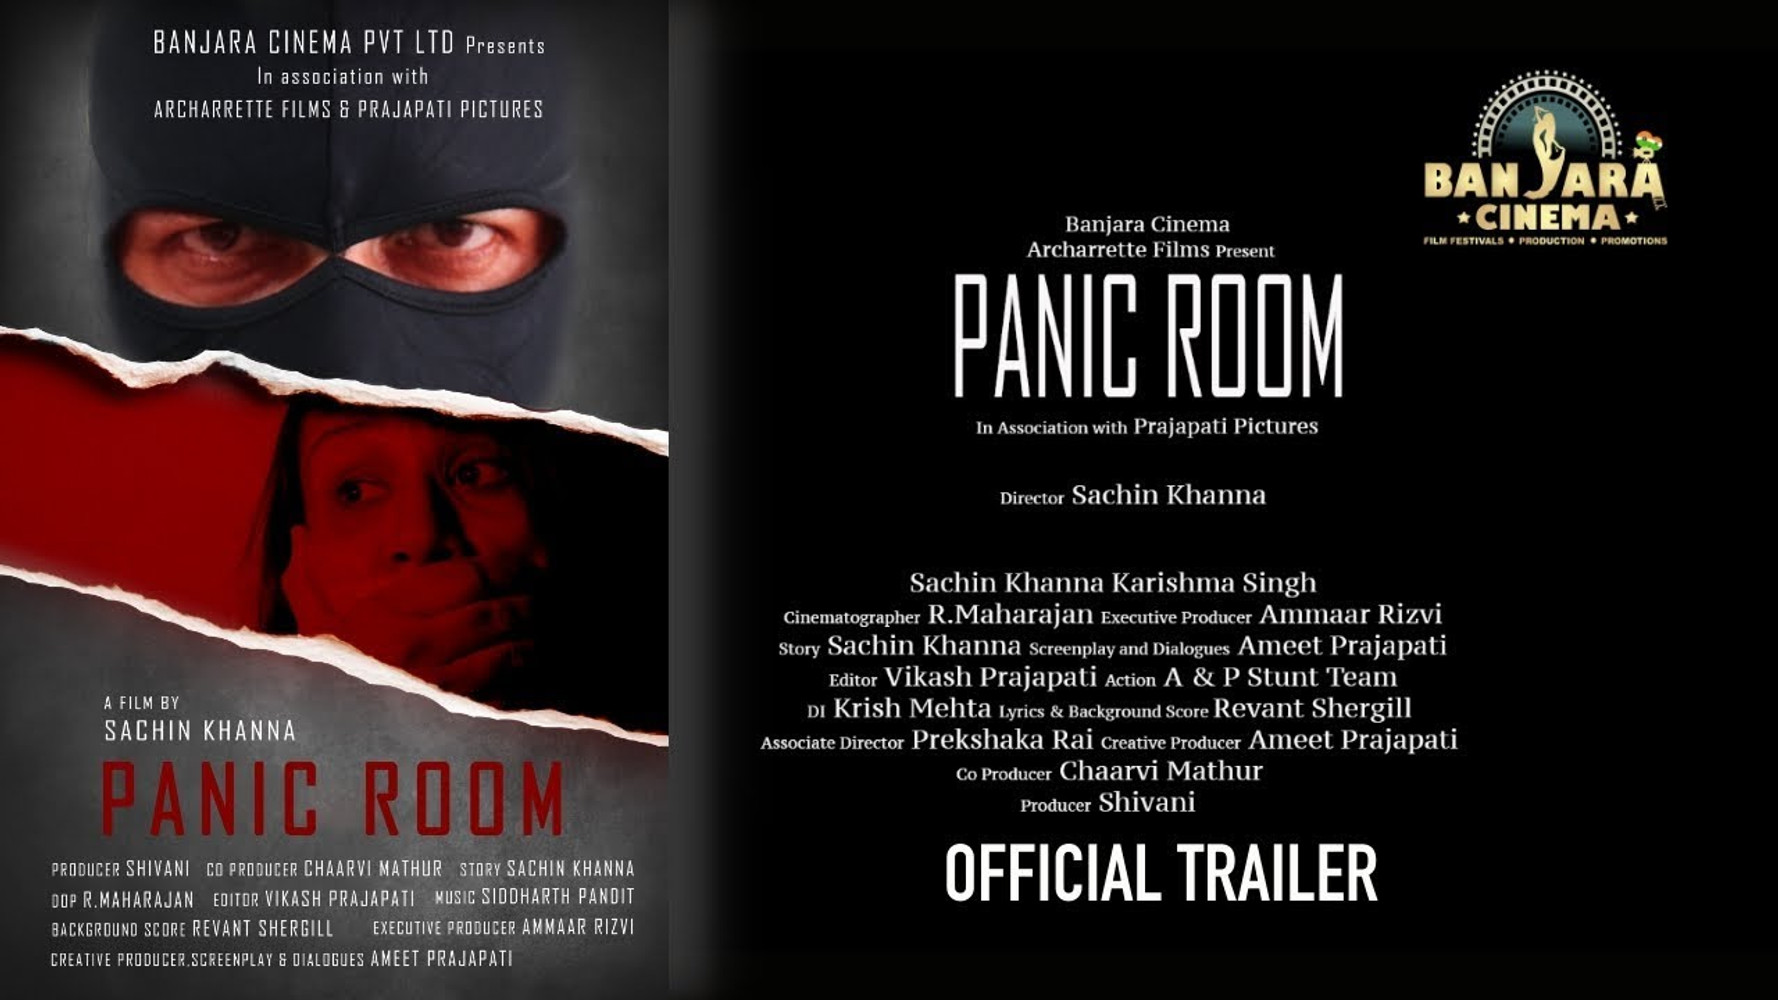 Banjara Cinema - Panic Room Trailer